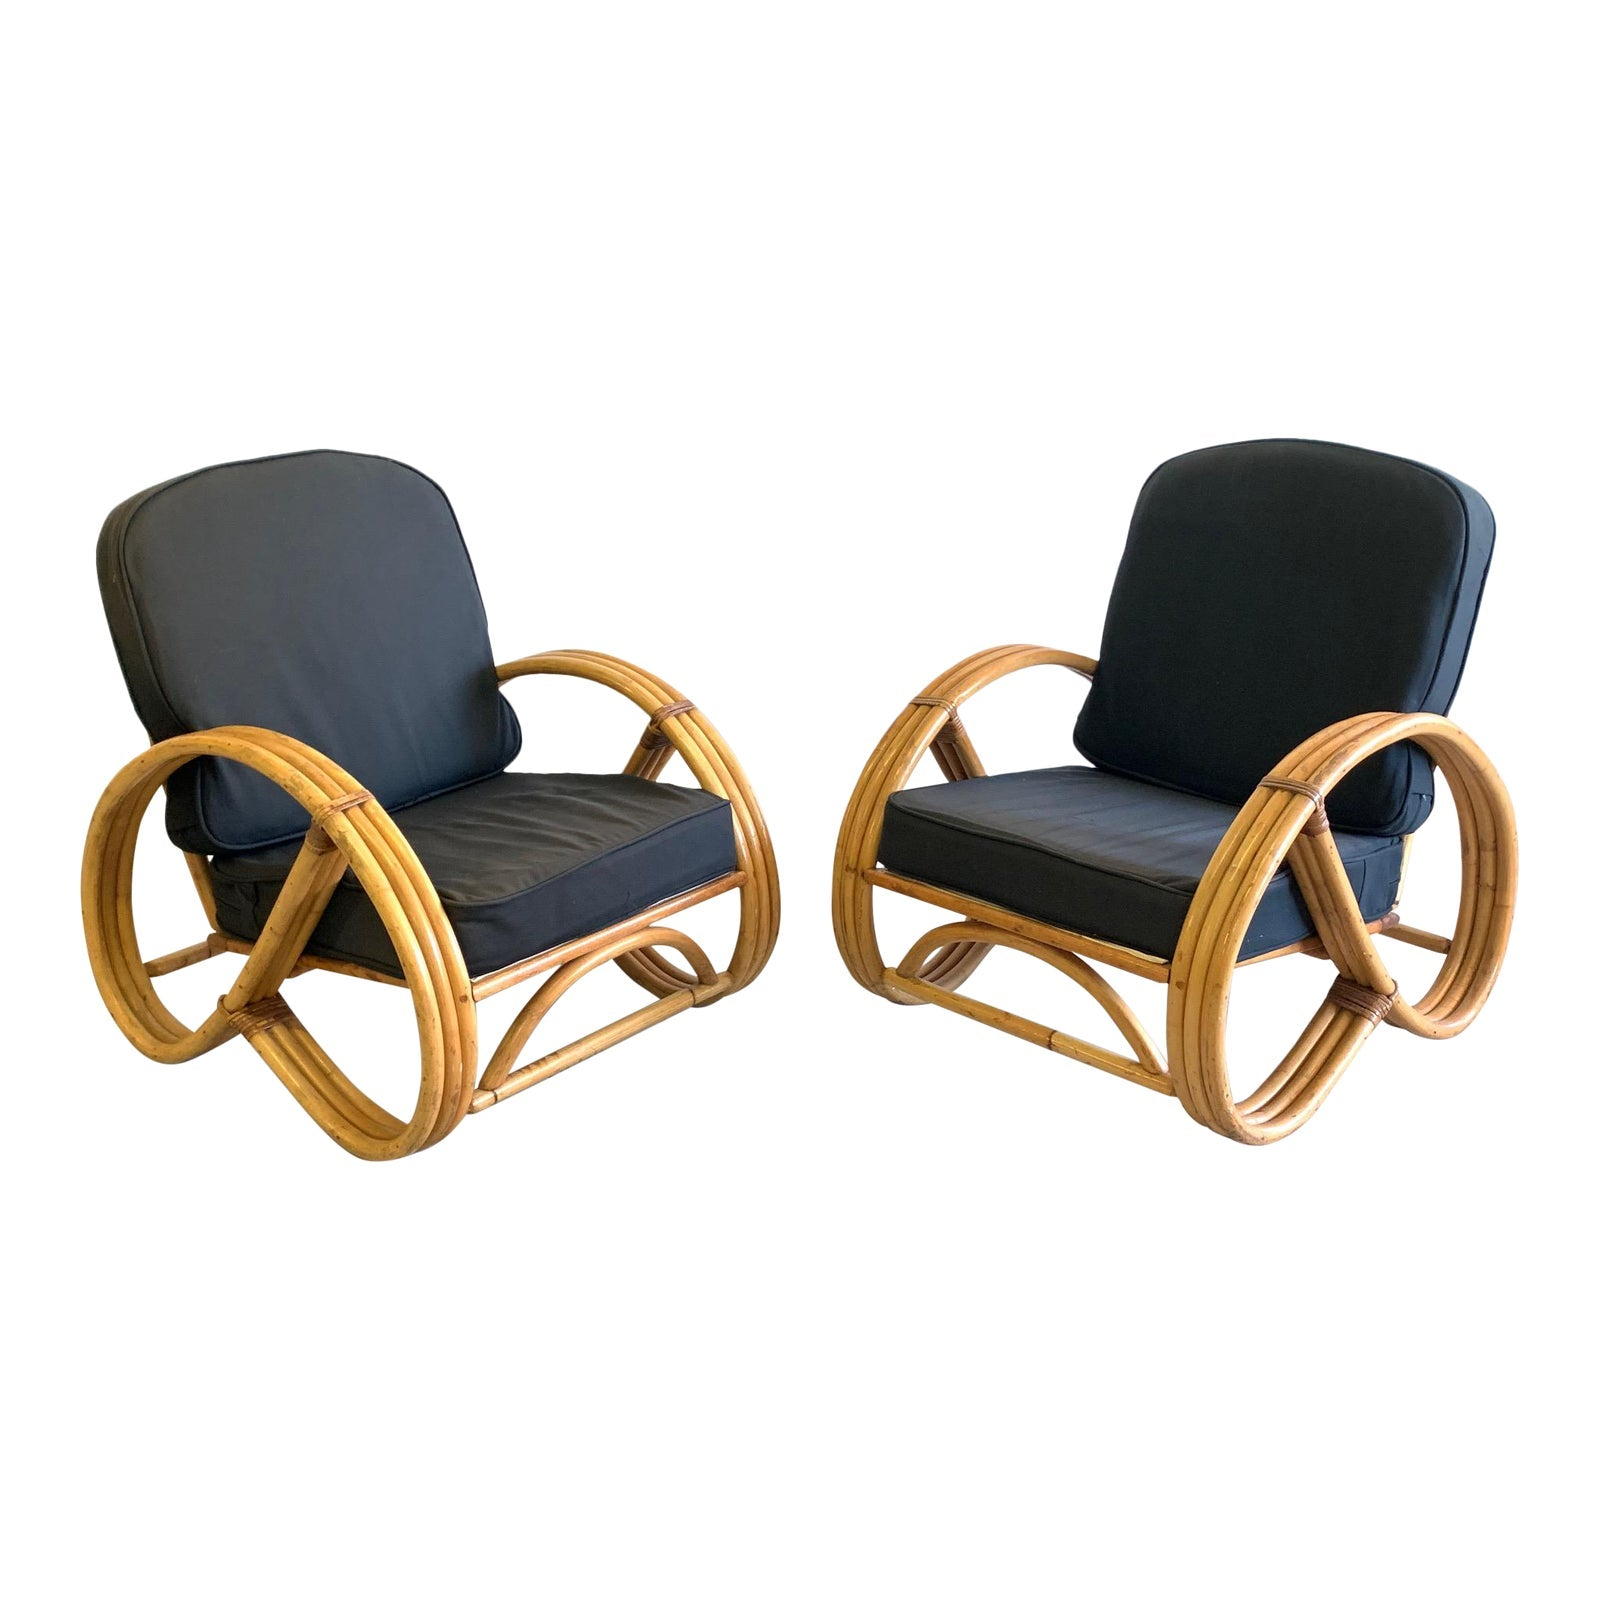 Paul Frankl Style Pretzel Chairs, a Pair